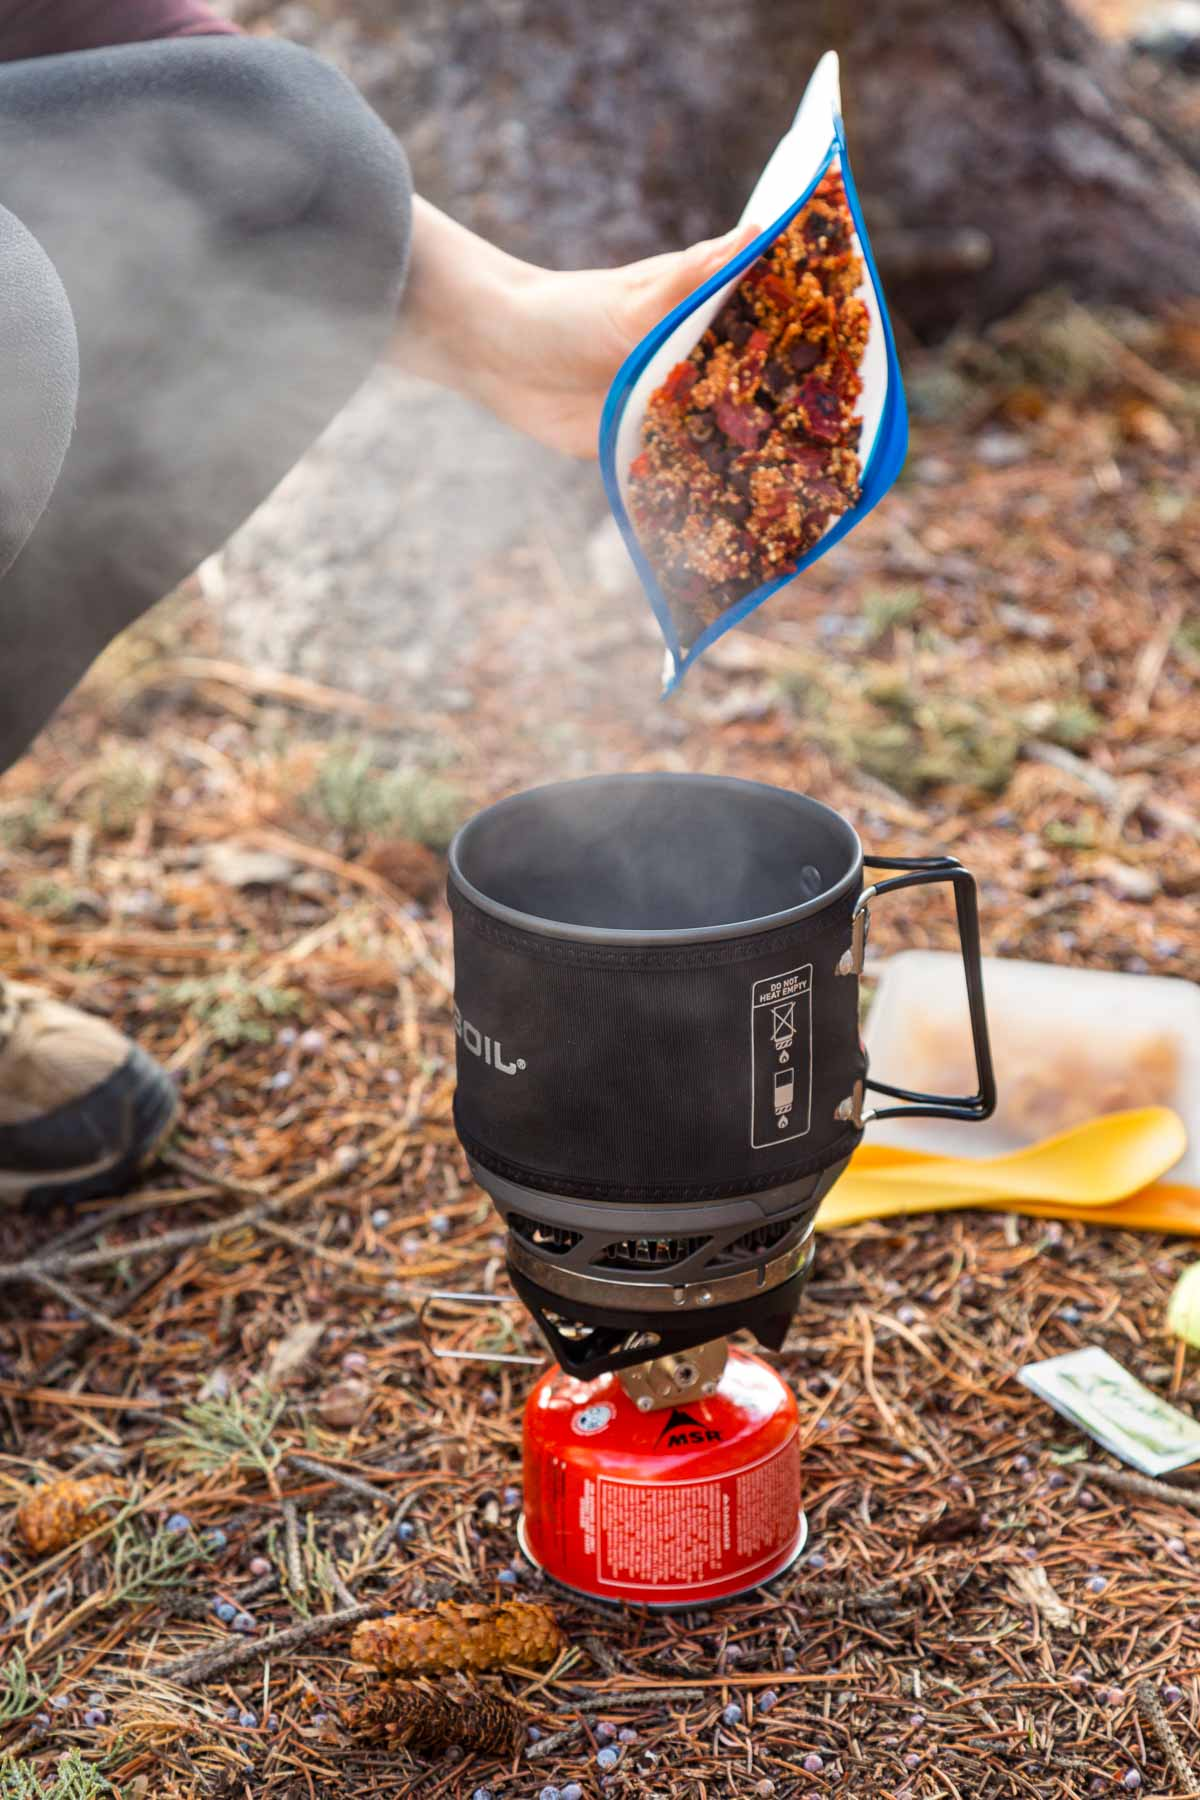 Megan pouring a backpacking meal from bag into a Jetboil stove